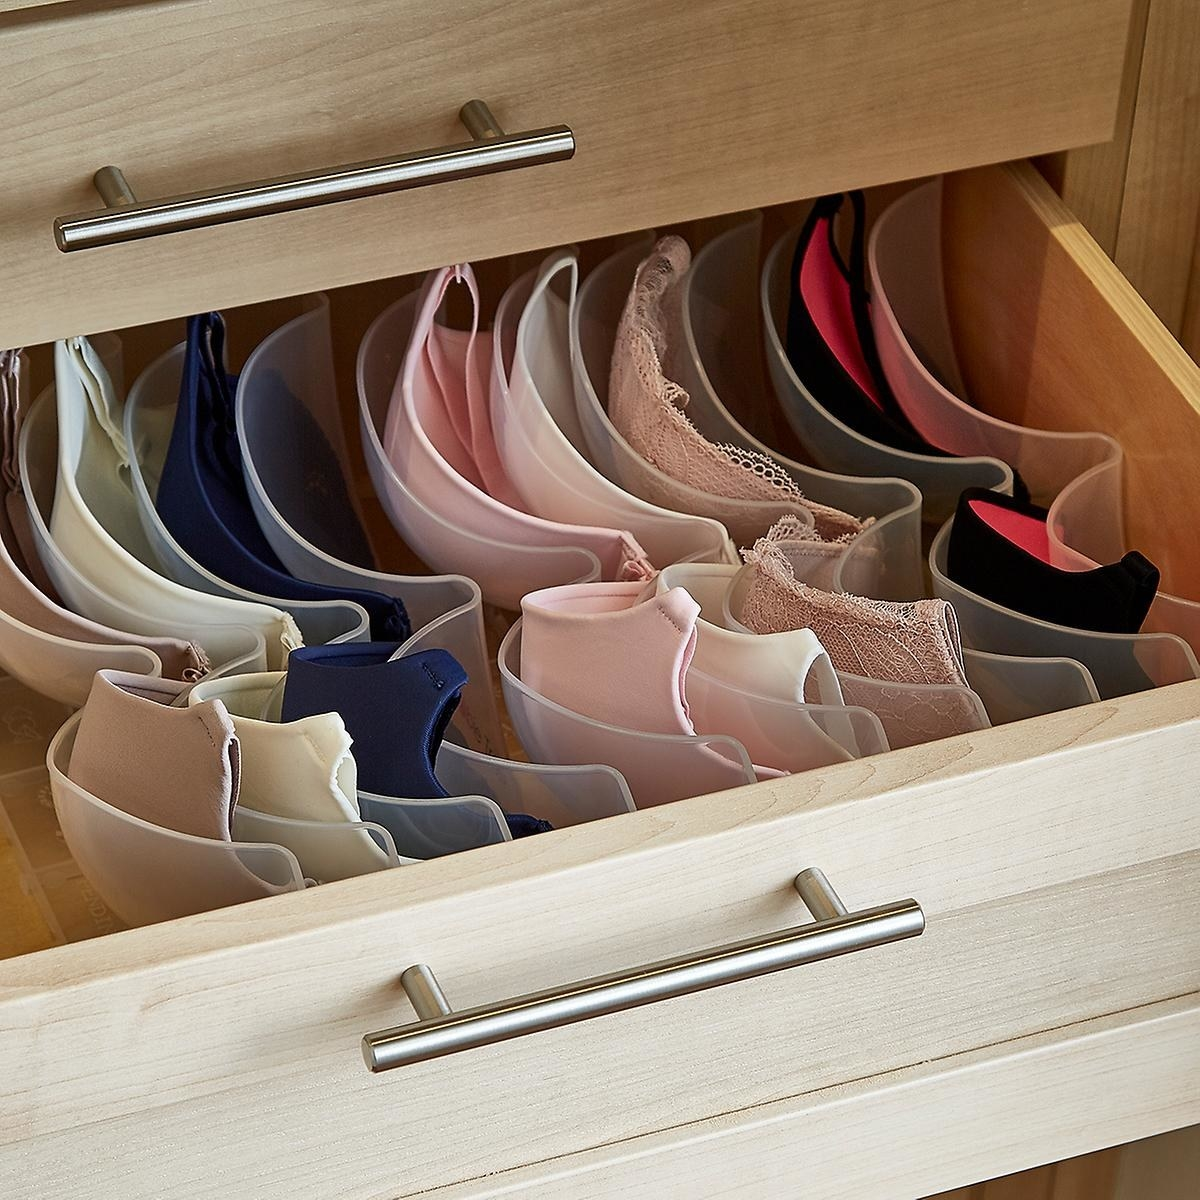 open bra drawer with the organizer in it